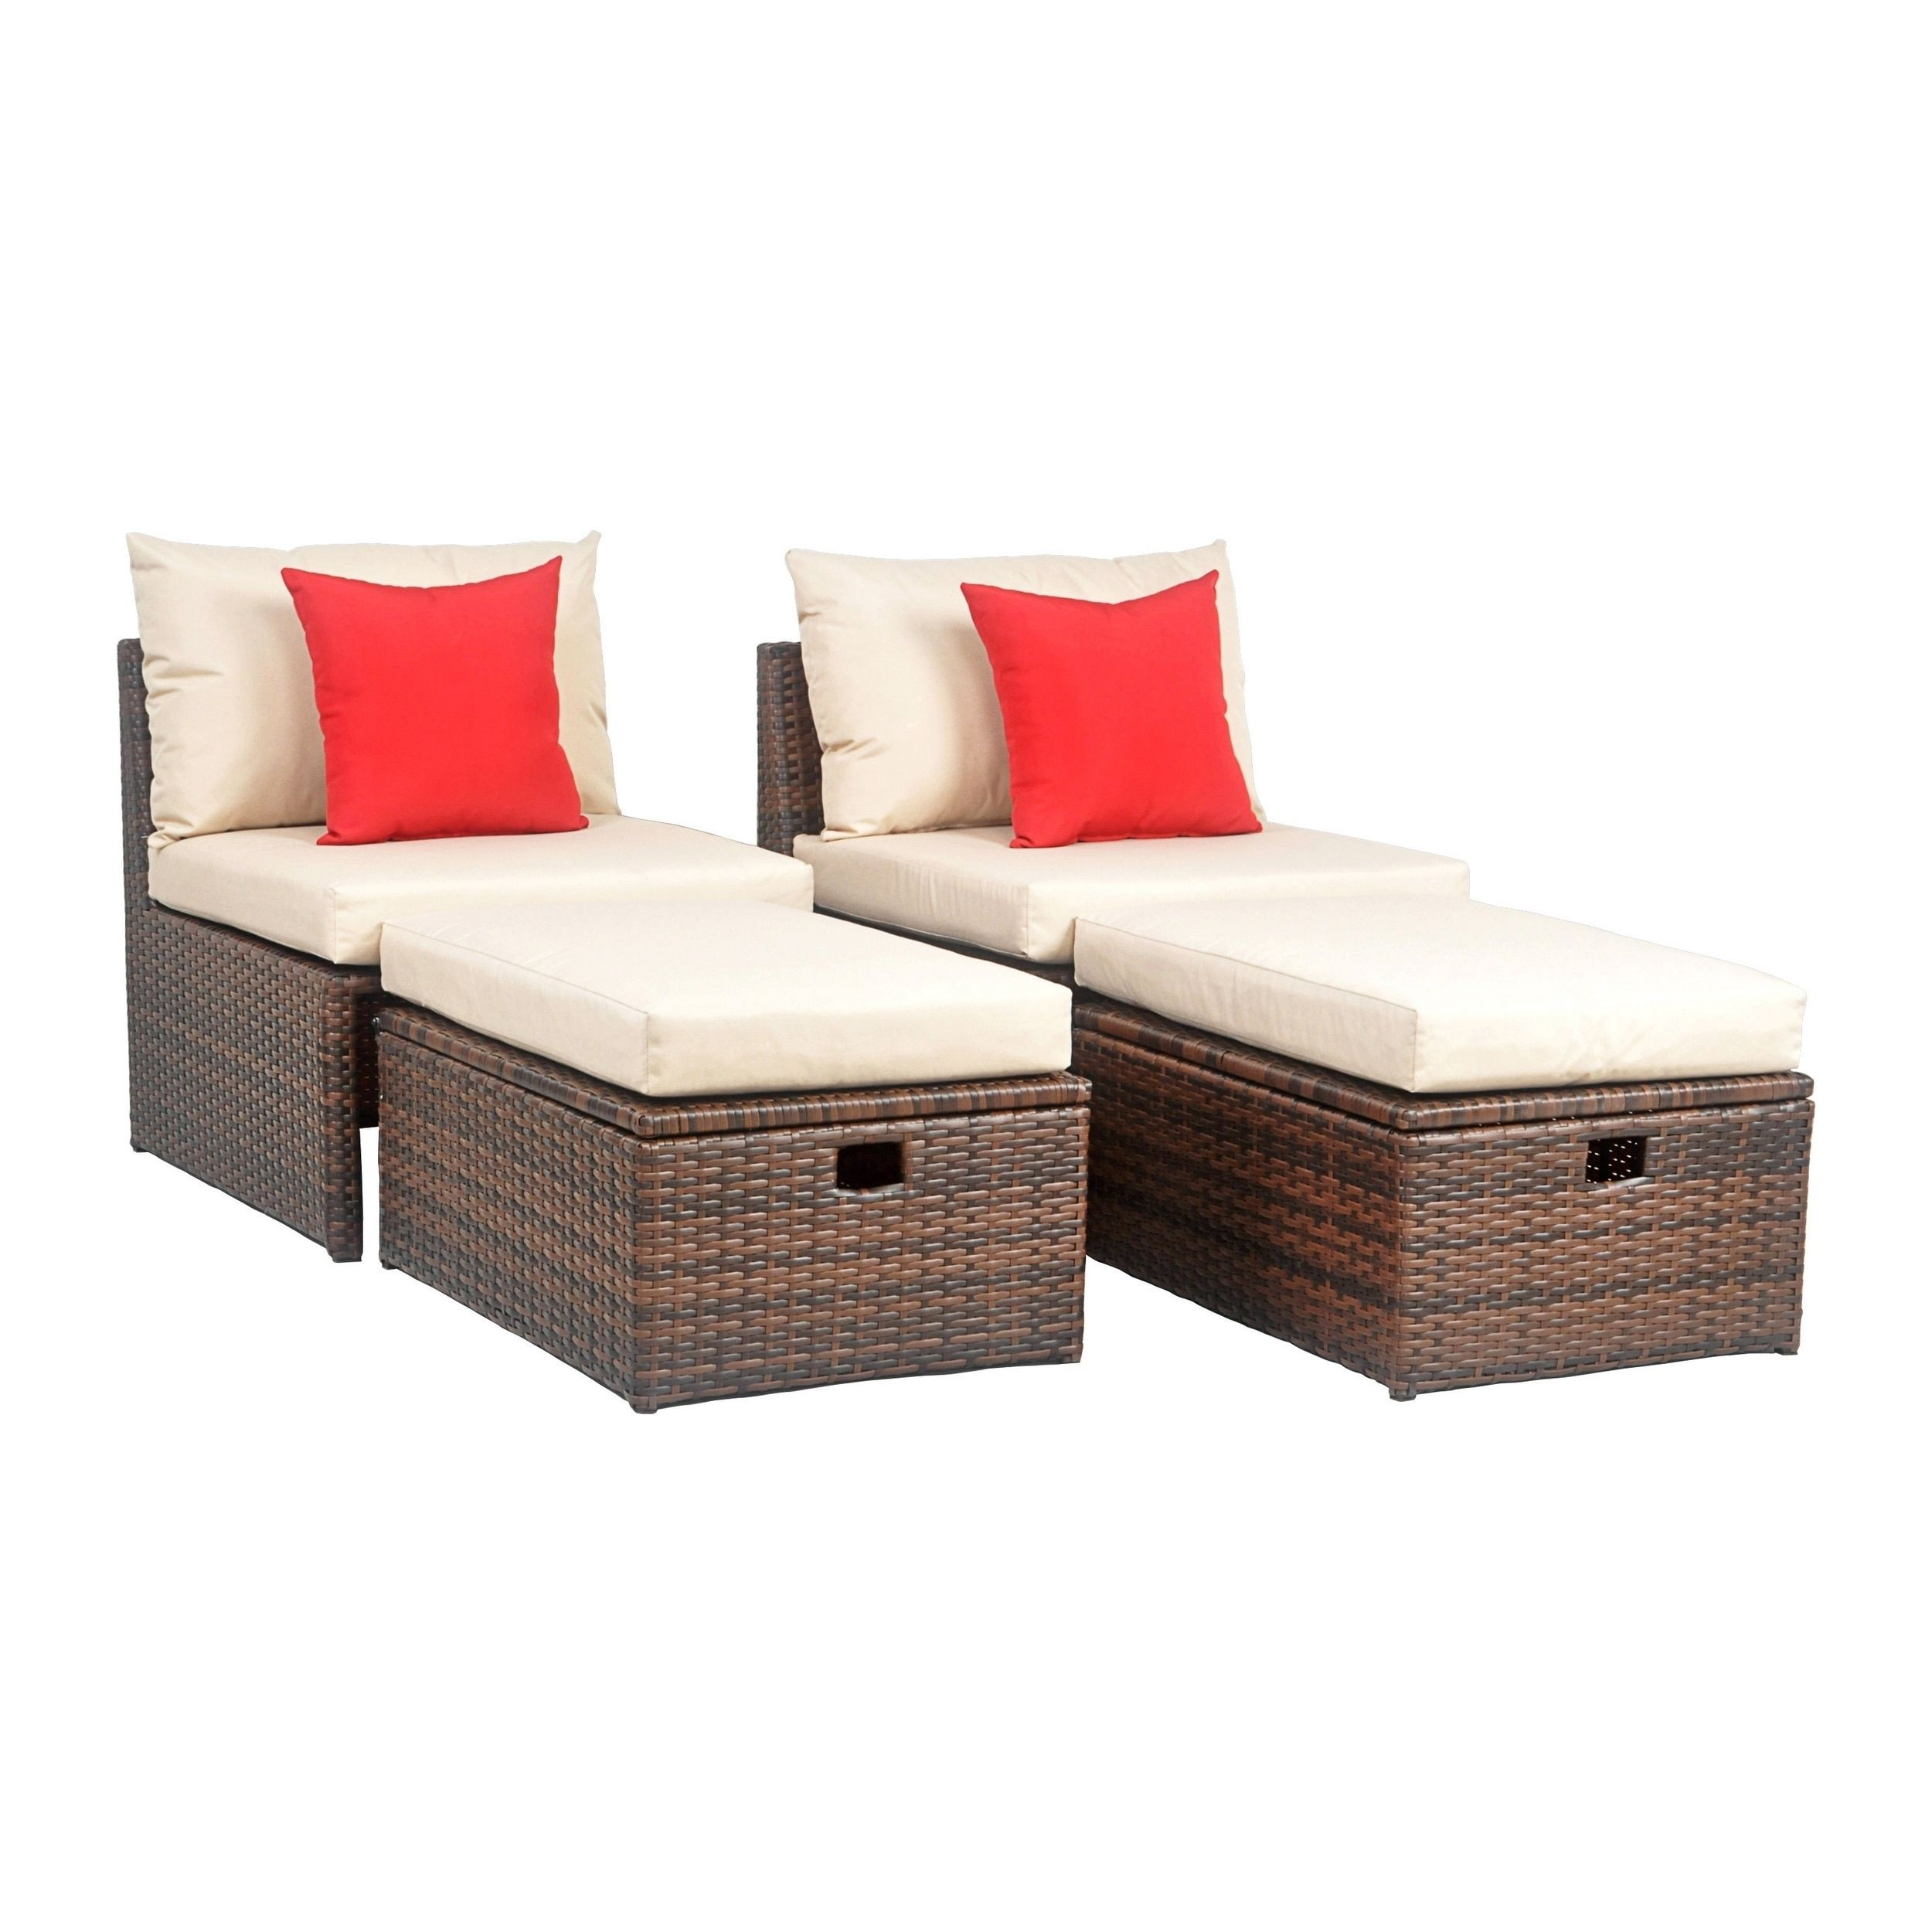 safavieh telford rattan brown tan red outdoor sette and storage wicker accent patio table ott size piece sets furniture blue bedside lamps glass floor lamp sheesham wood tall